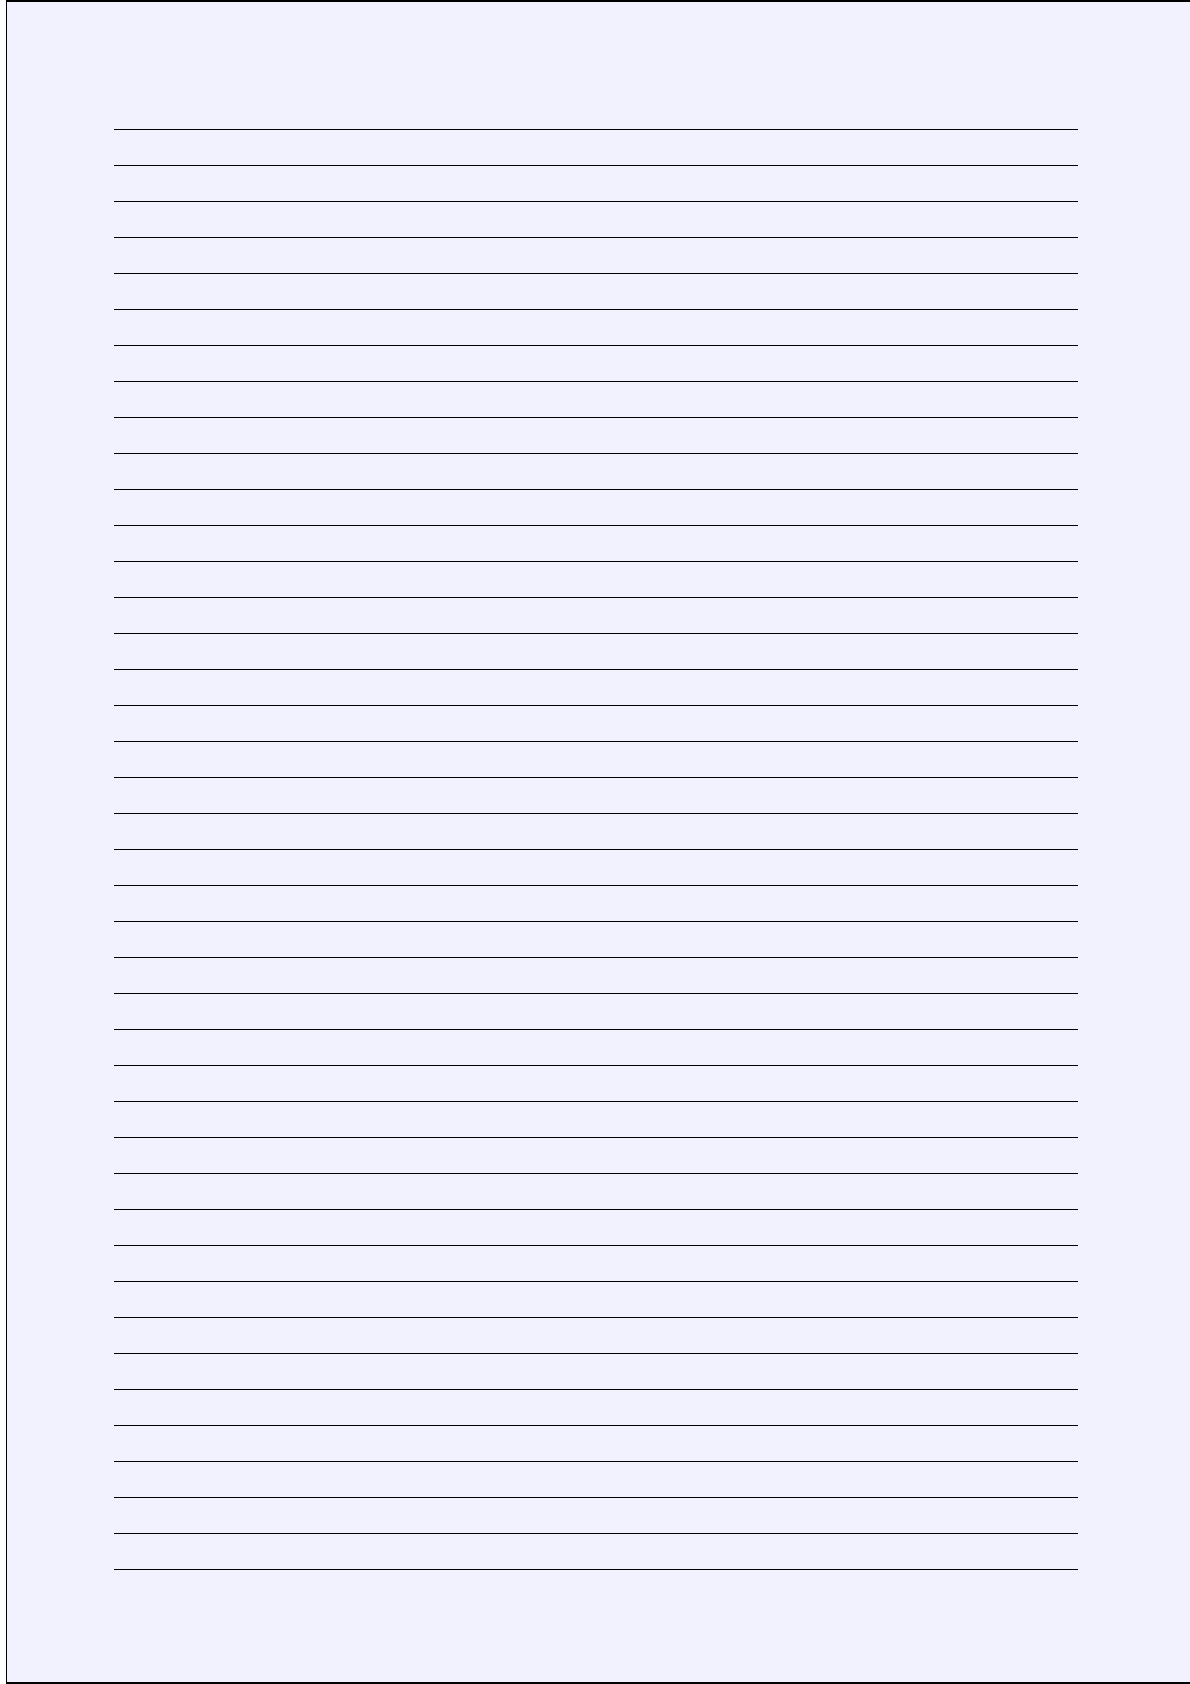 a4 size lined paper with narrow black lines